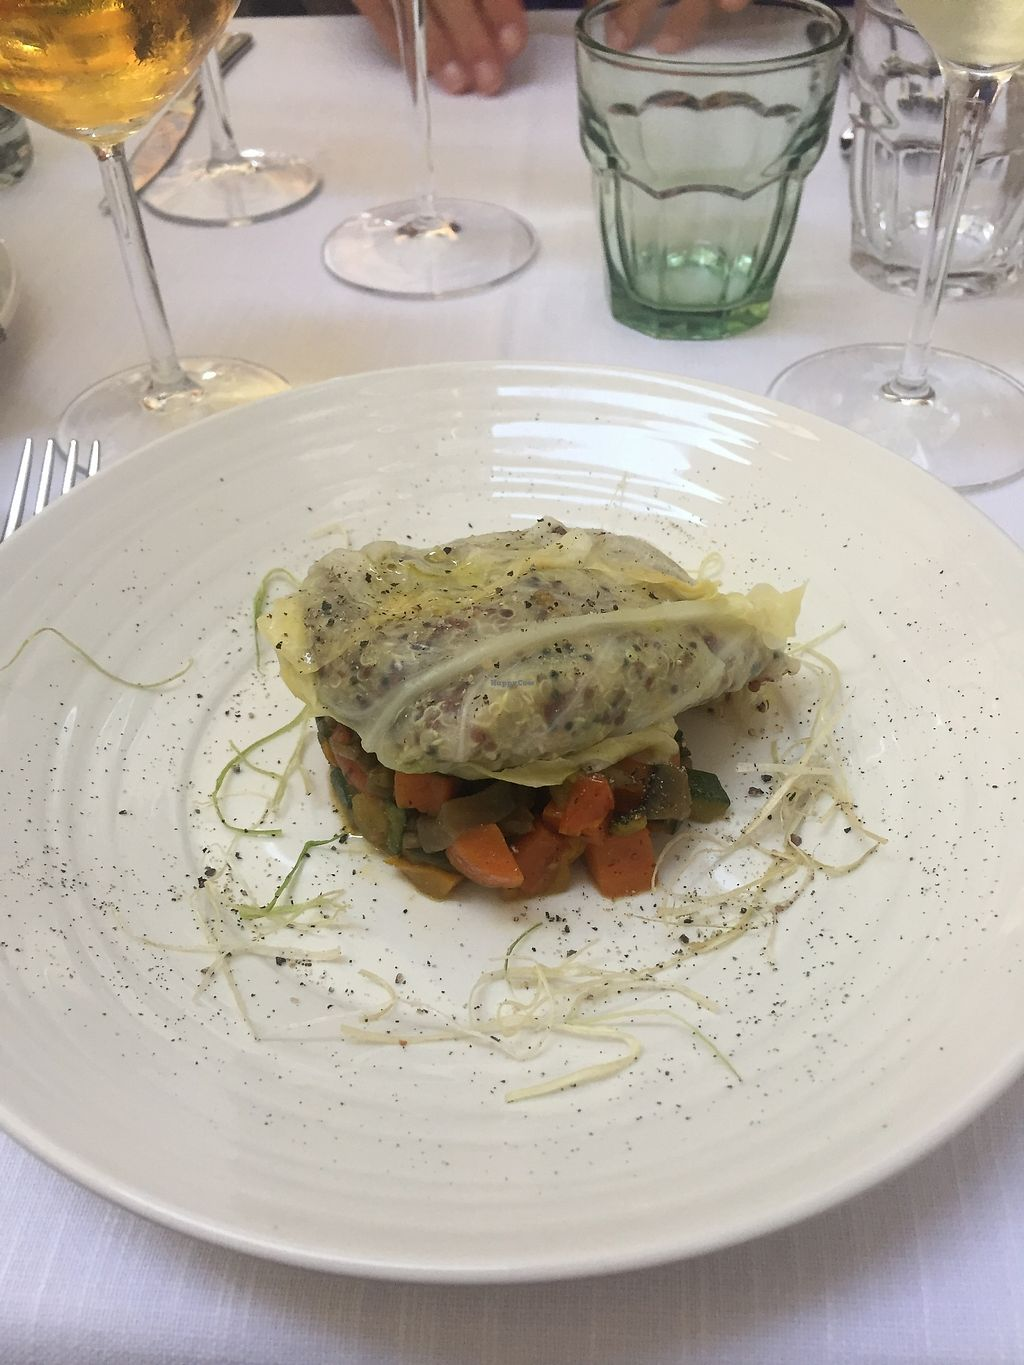 """Photo of La Piazzetta  by <a href=""""/members/profile/Annigje"""">Annigje</a> <br/>Starter <br/> August 9, 2017  - <a href='/contact/abuse/image/98210/290873'>Report</a>"""